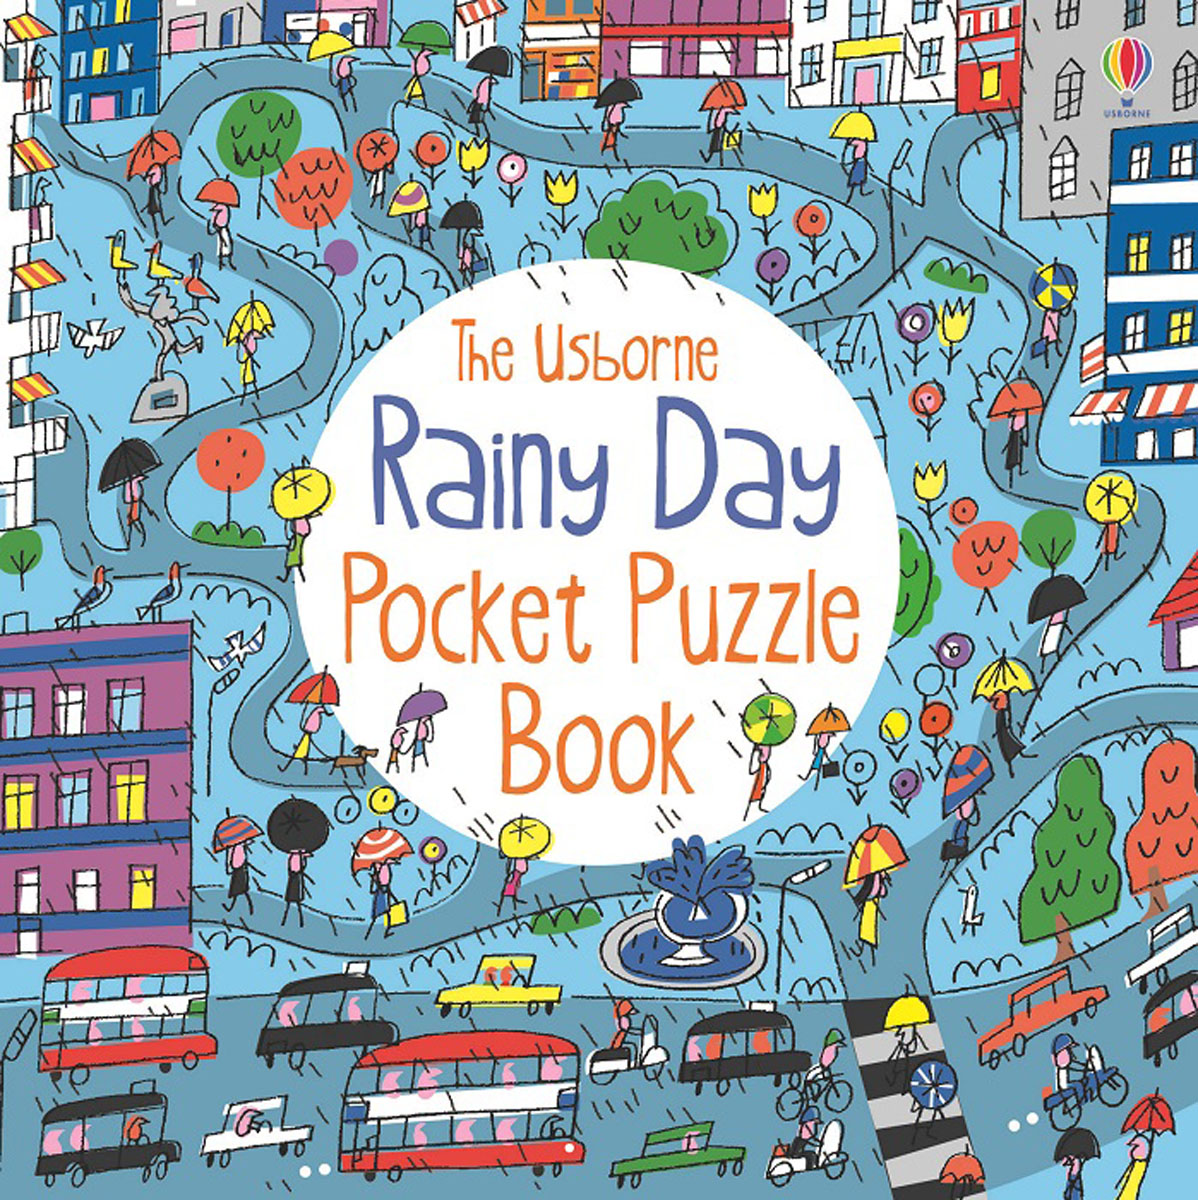 Rainy Day Pocket Puzzle Book where have you been